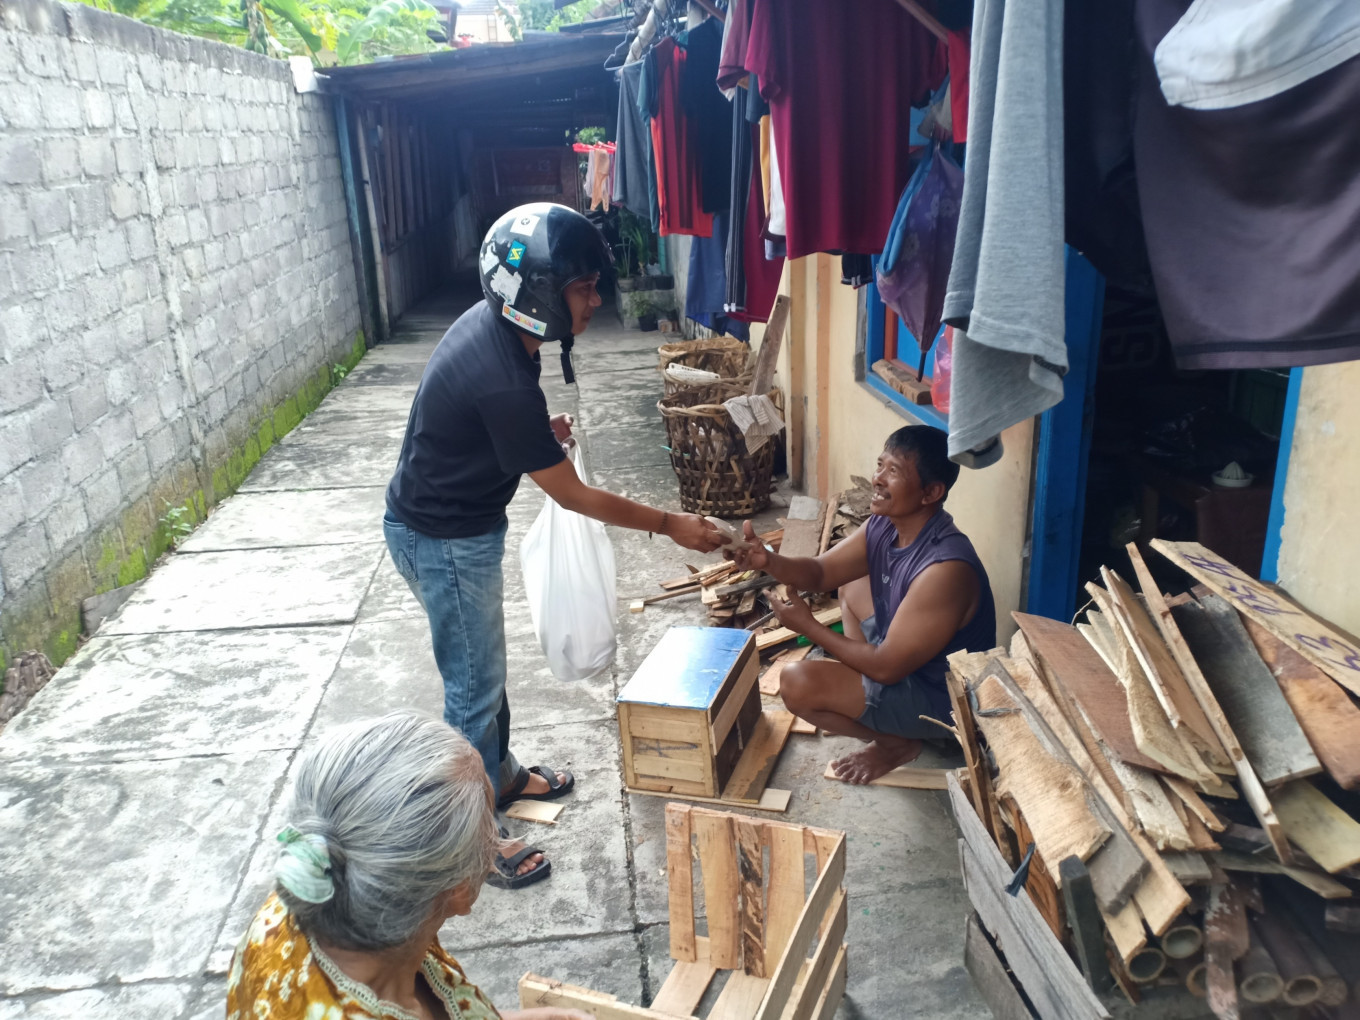 In Indonesia, rural helps urban to ensure food supply during coronavirus pandemic